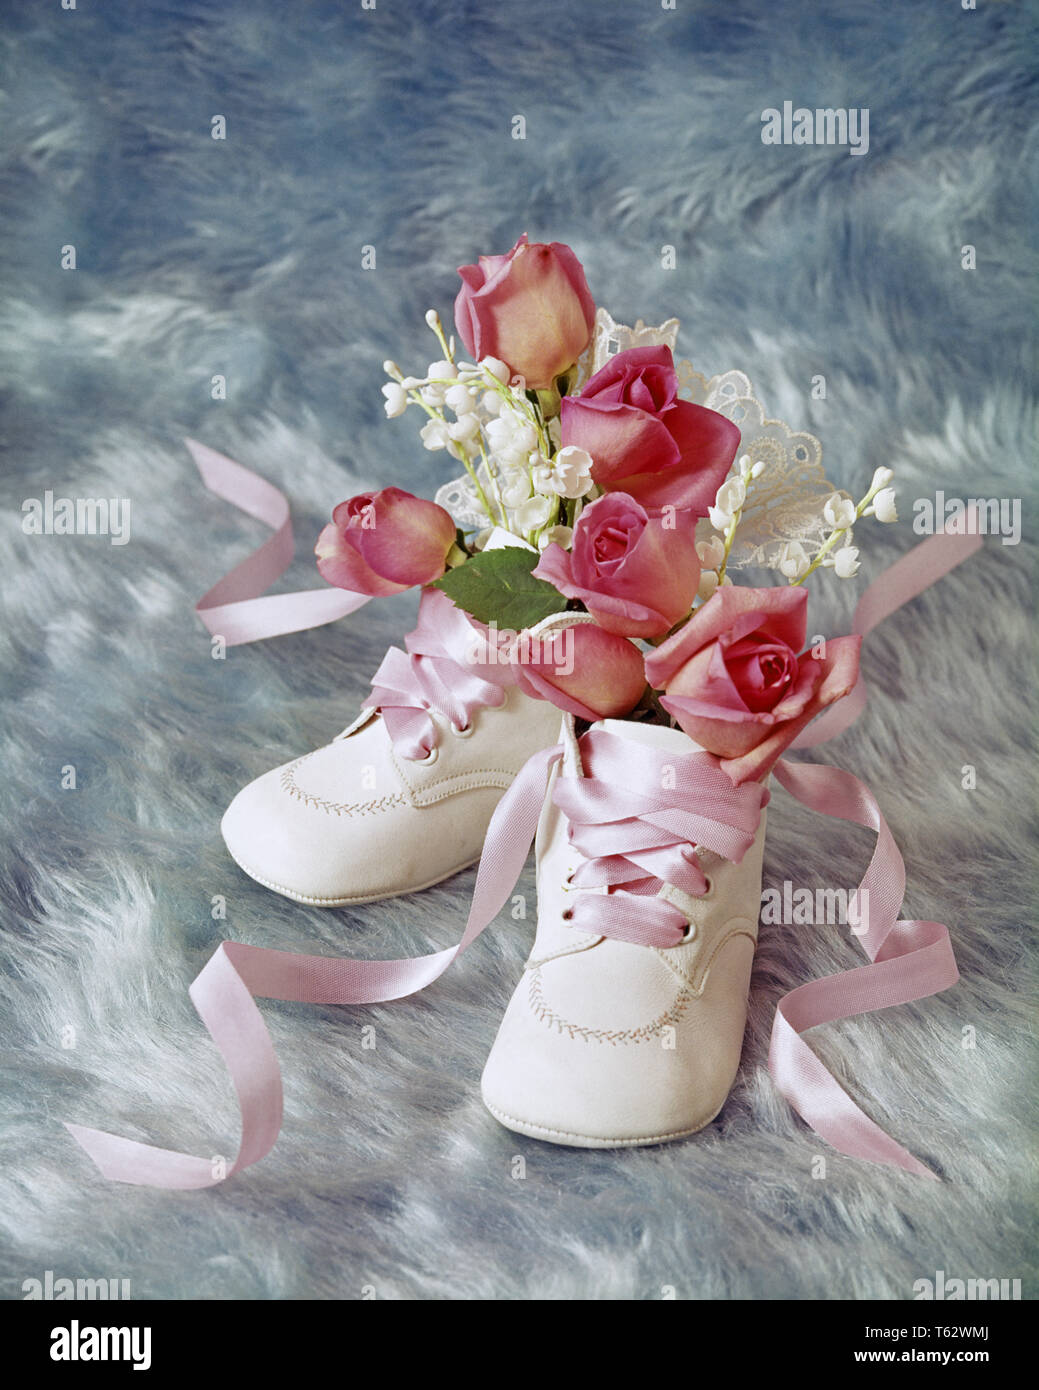 1970s 1980s BIRTHDAY STILL LIFE OF WHITE BABY SHOES HOLDING MINIATURE PINK ROSES AND BABY'S BREATH FLOWERS ON BLUE BACKGROUND - kf8897 PHT001 HARS OLD FASHIONED Stock Photo